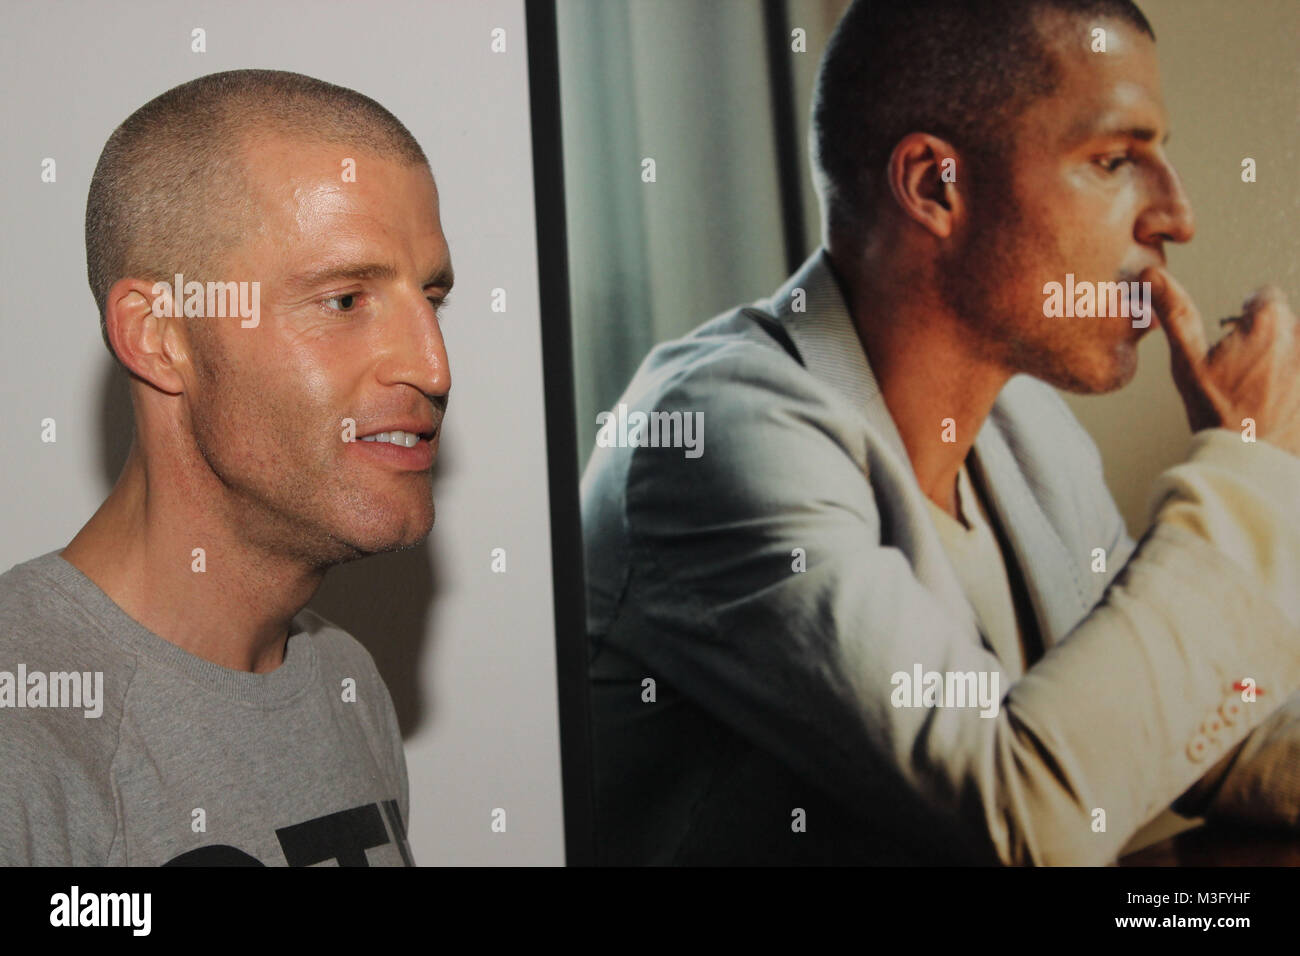 Benjamin Von Stuckrad Barre Till Broenners Ausstellung Faces Of Stock Photo Alamy